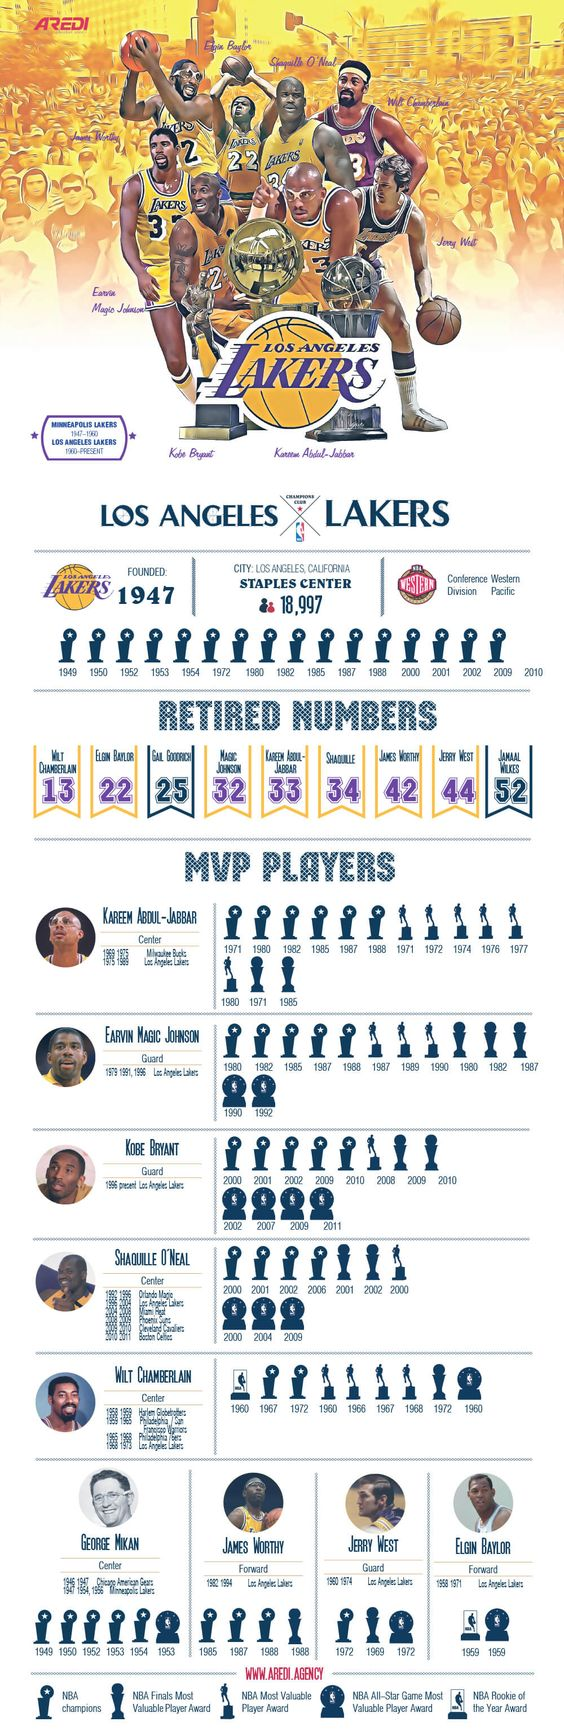 Los Angeles Lakers, infographic, design, sport, basketball, champion, create, art, illustration, NBA, Legends, champion, Kobe Brayant, Shaquille O'Neal,  Magic Johnson, Kareem Abdul-Jabbar,  Wilt Chamberlain, Jerry West, George Mikan, club